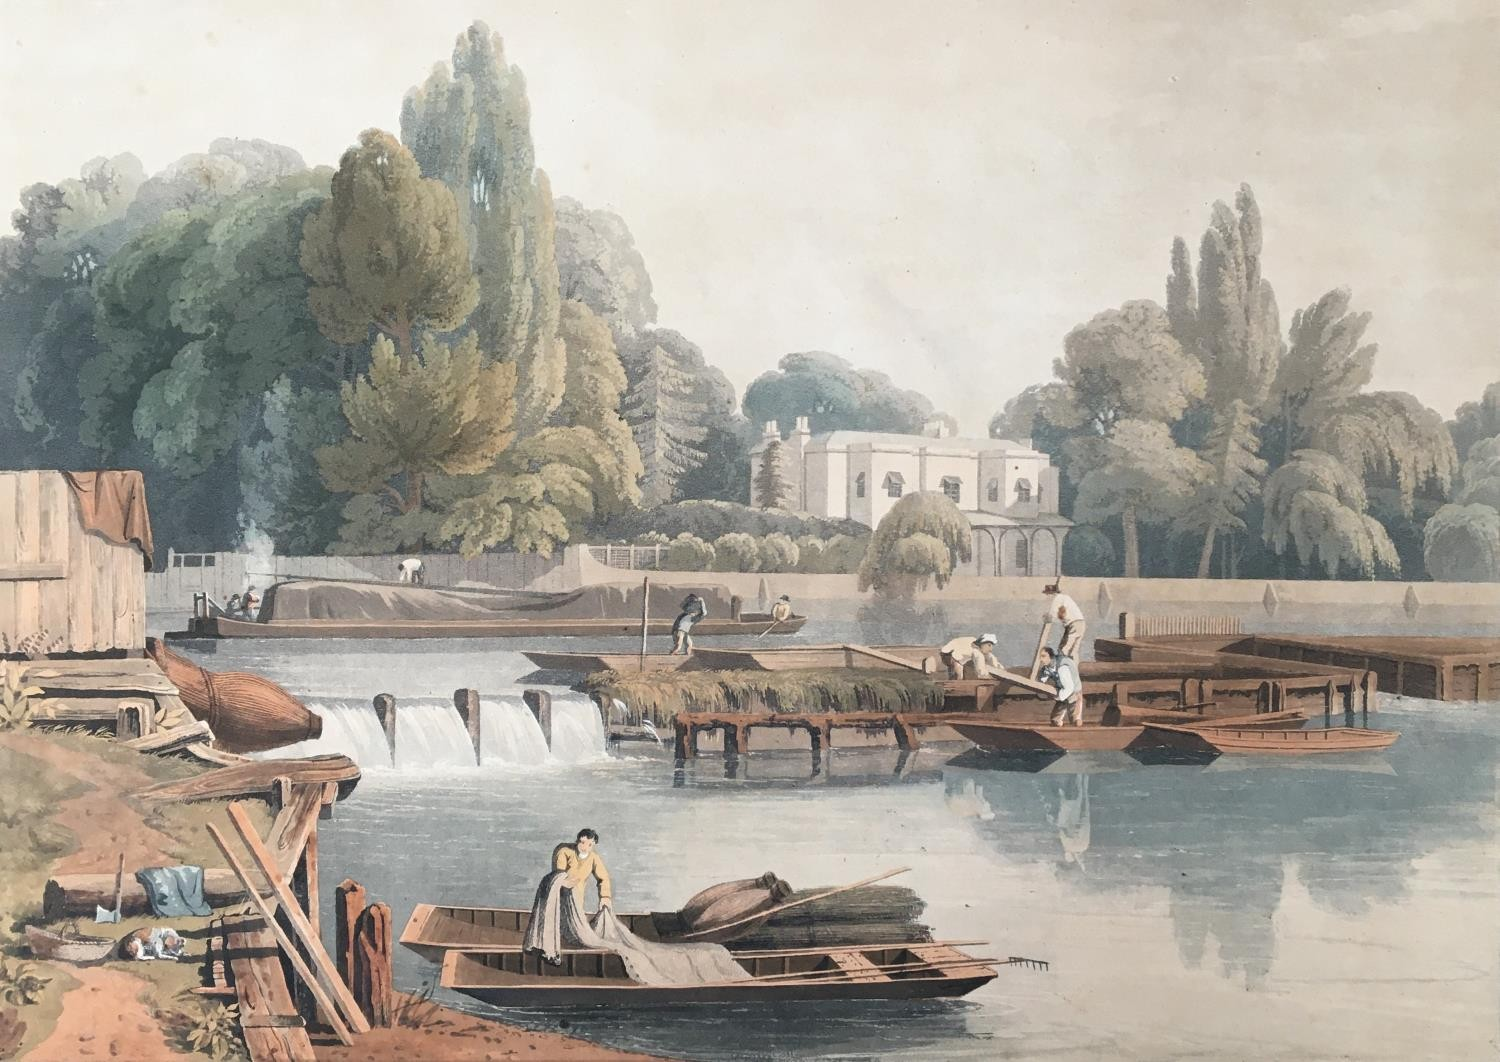 A collection of ten 19th century chromolithographs after William Havell, 'An Island On The Thames - Image 6 of 10